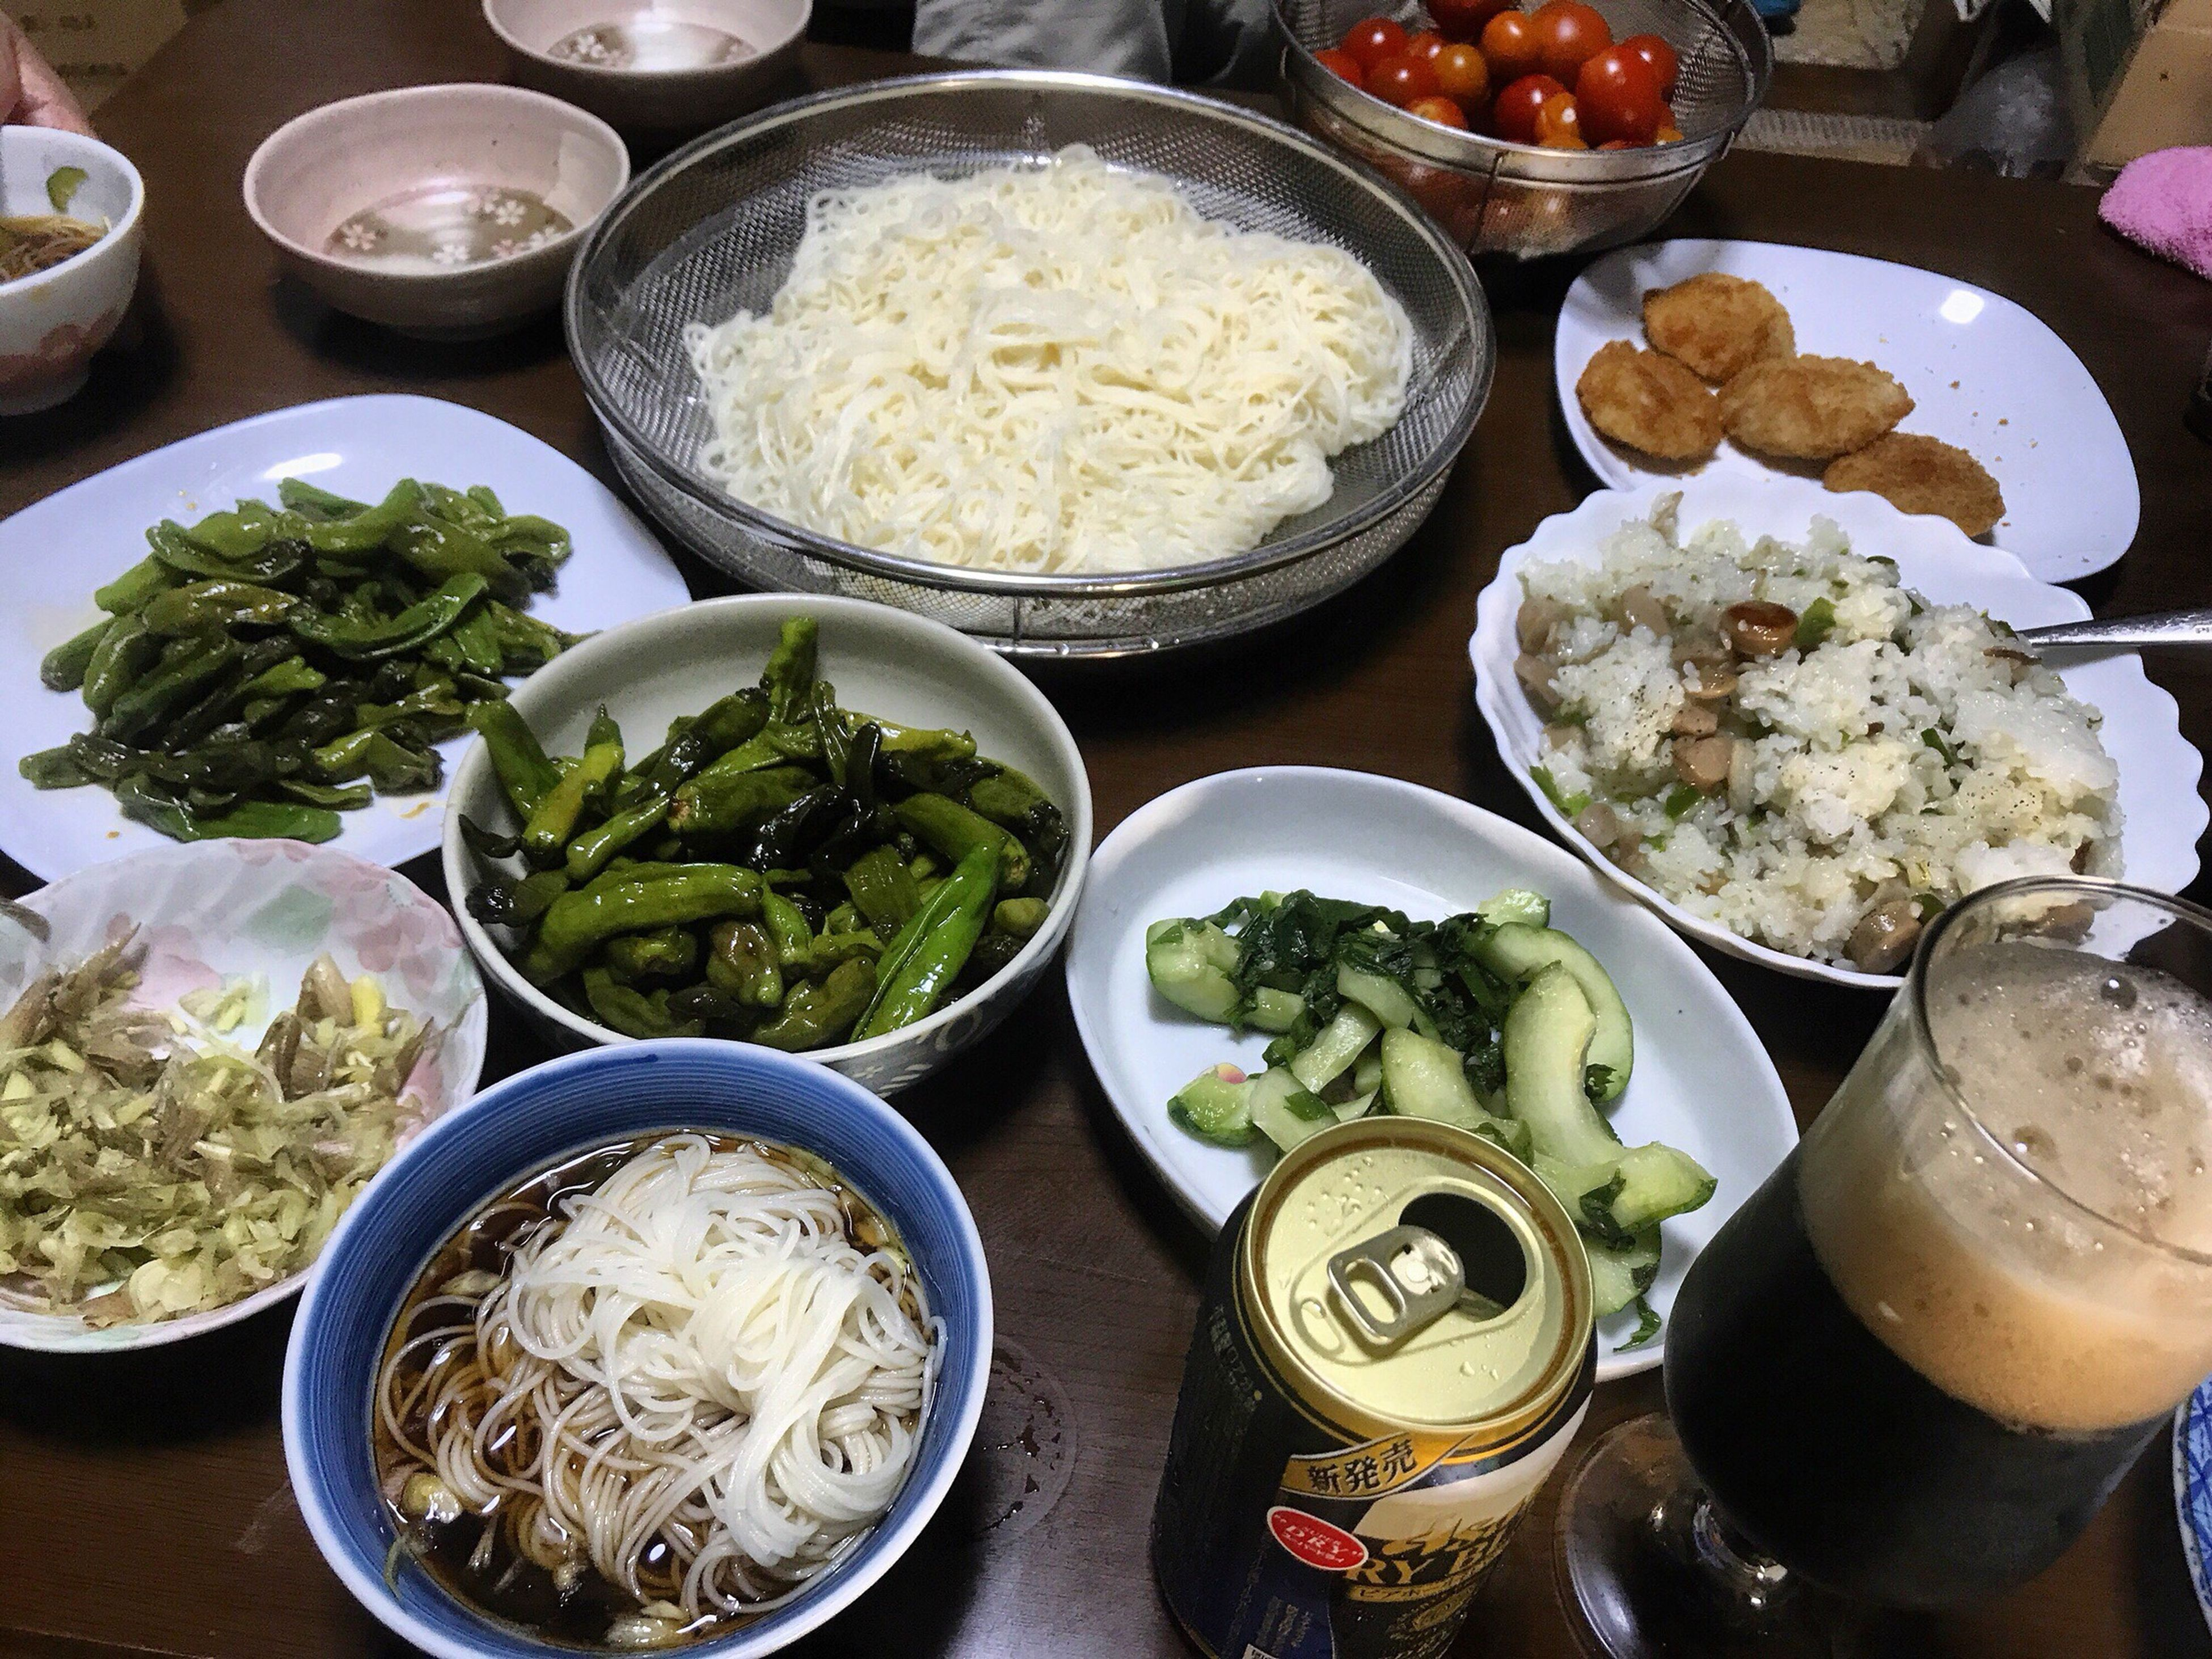 food and drink, bowl, food, plate, vegetable, table, freshness, healthy eating, salad, high angle view, indoors, variation, ready-to-eat, serving size, no people, mashed potatoes, day